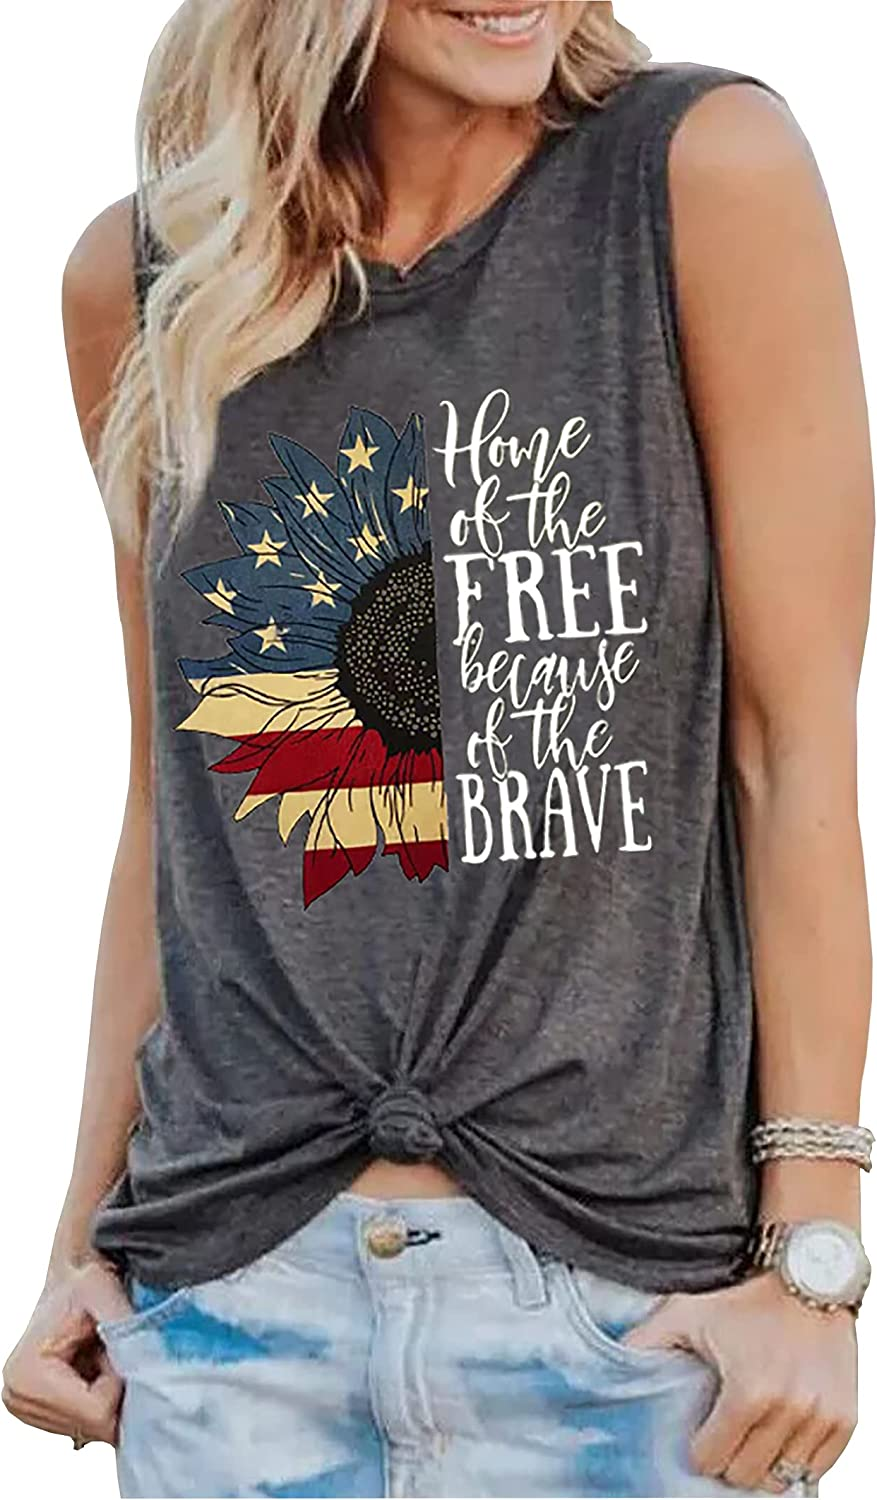 Sunflower American Flag Home of The Free Because of The Brave Tank Top Women 4th of July USA Patriotic Tee Shirt